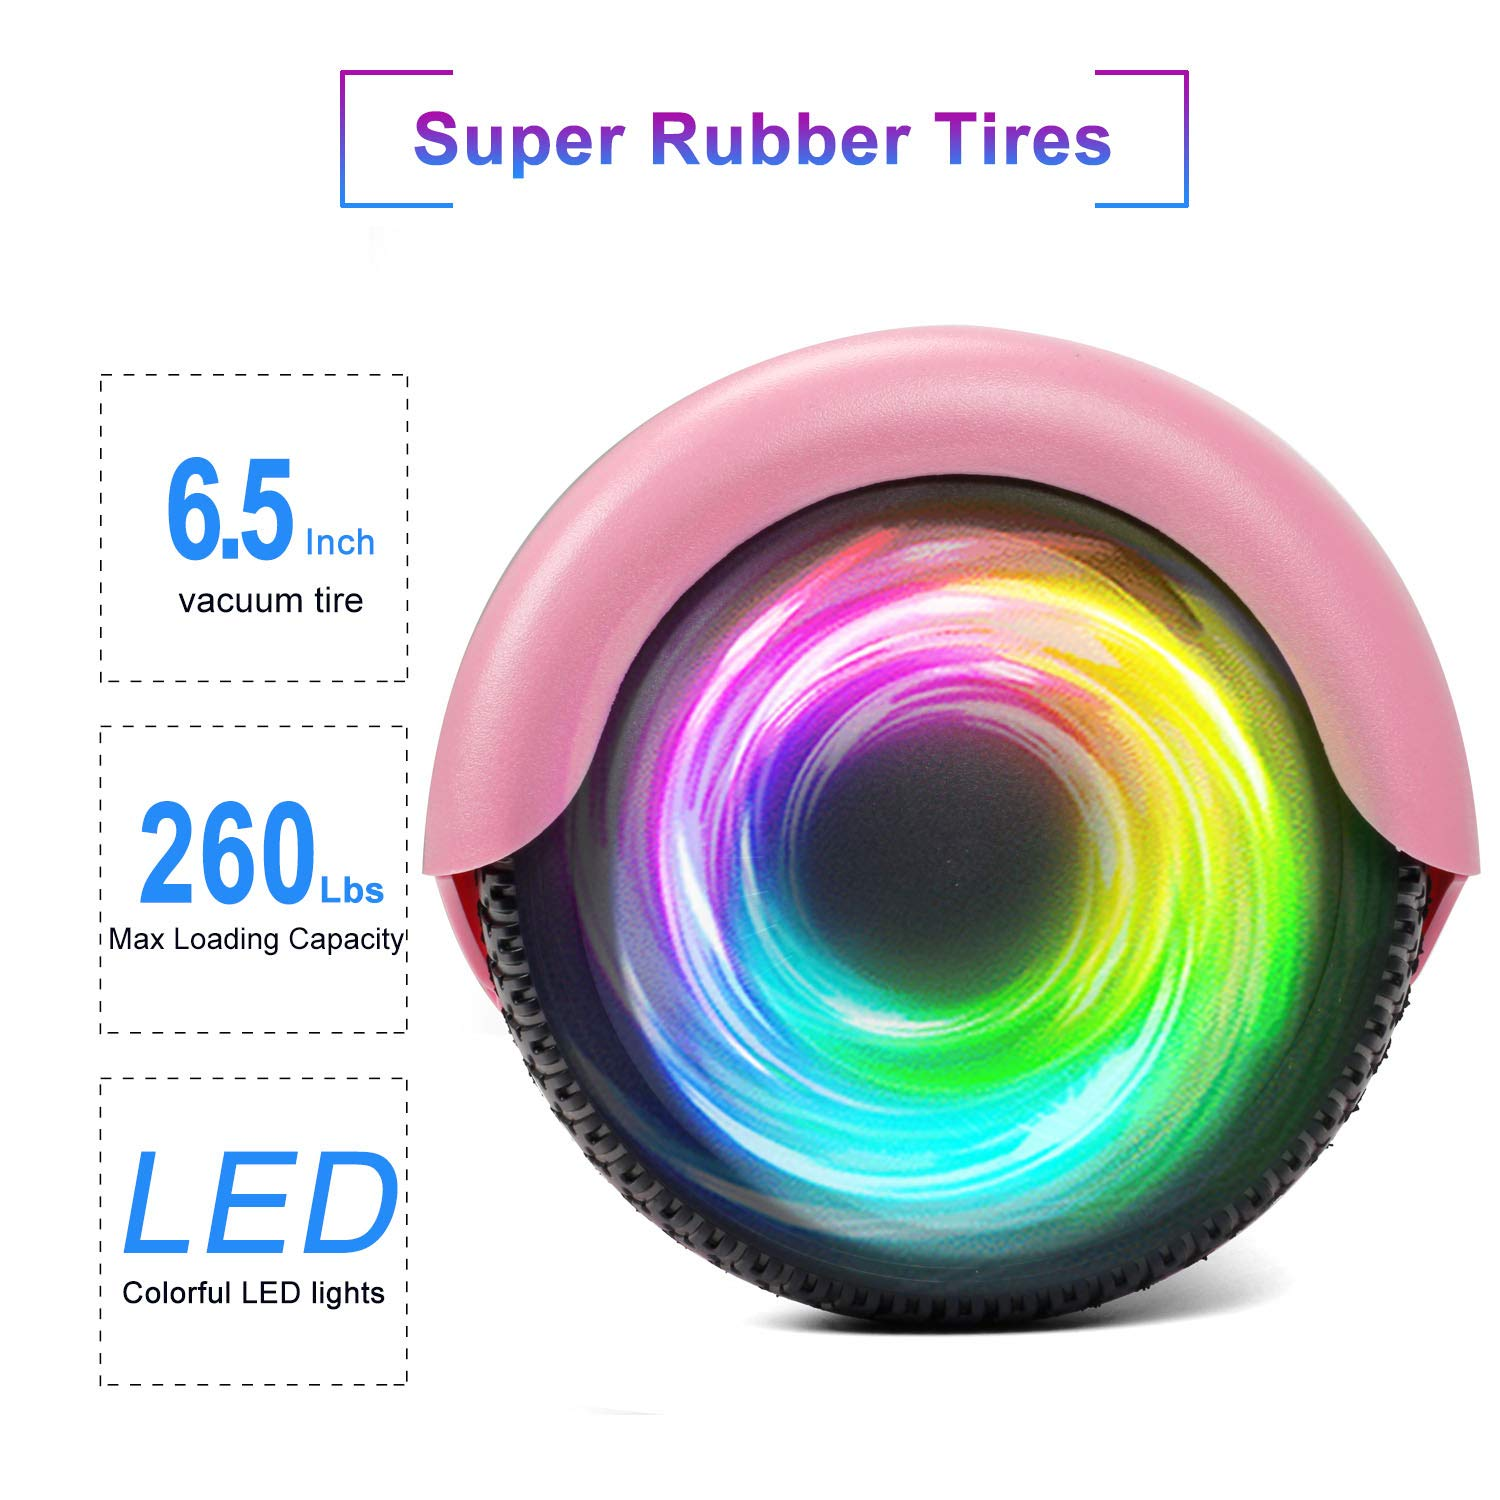 SISIGAD Hoverboard Self Balancing Scooter 6.5'' Two-Wheel Self Balancing Hoverboard with LED Lights Electric Scooter for Adult Kids Gift UL 2272 Certified - Pink by SISIGAD (Image #4)